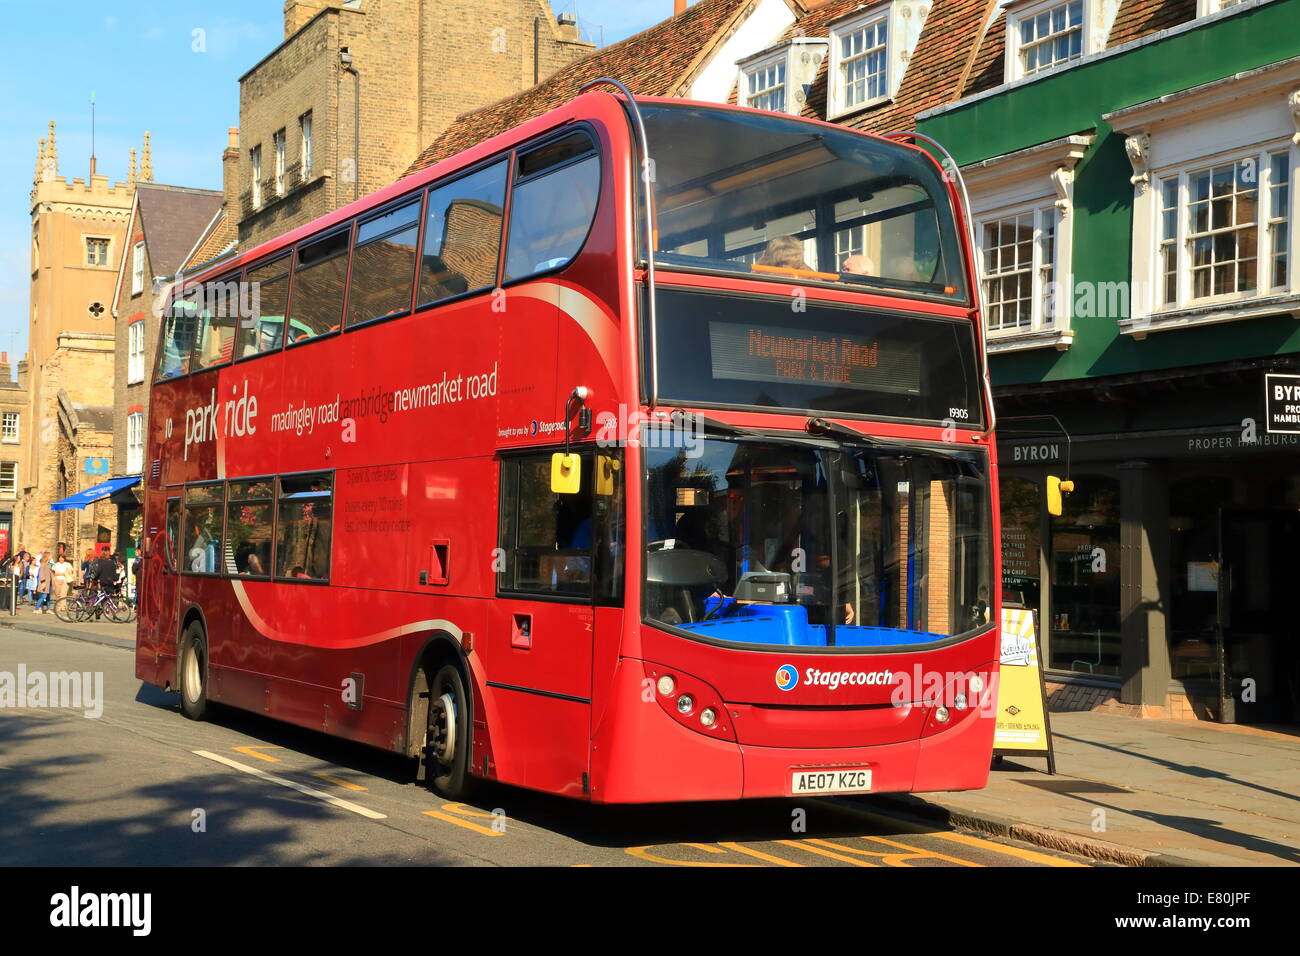 Red bus Cambridge, UK - Stock Image